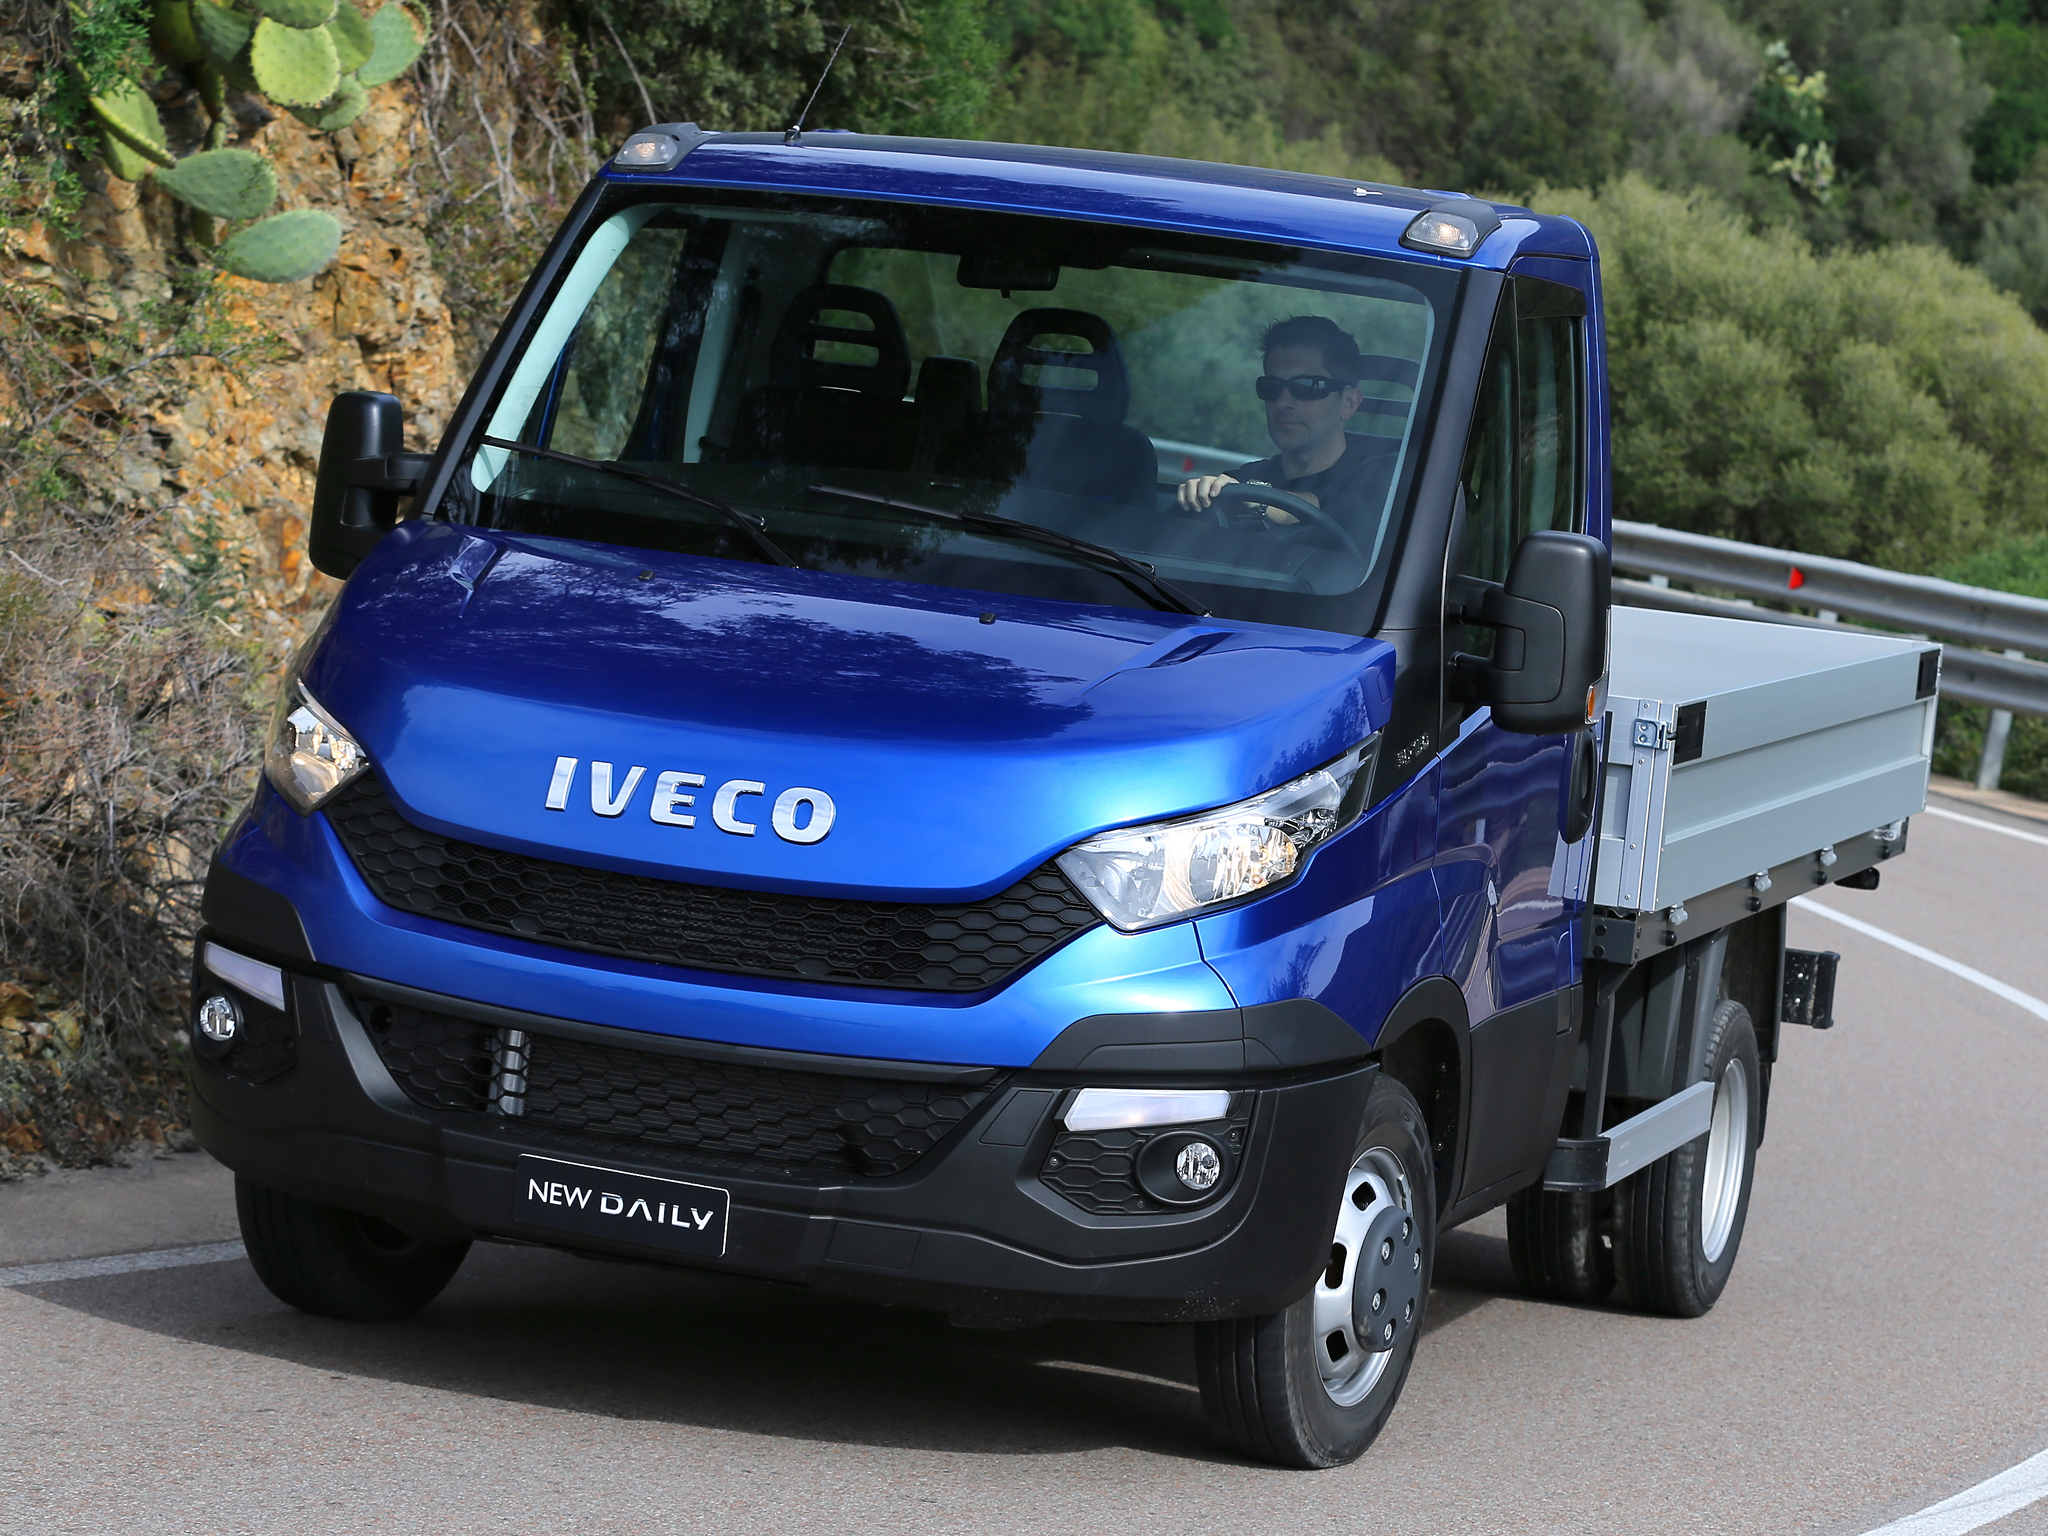 Iveco Reveals The New Daily For 2014 Say It S 80 Redesigned Photo Gallery 82153 on dump truck front